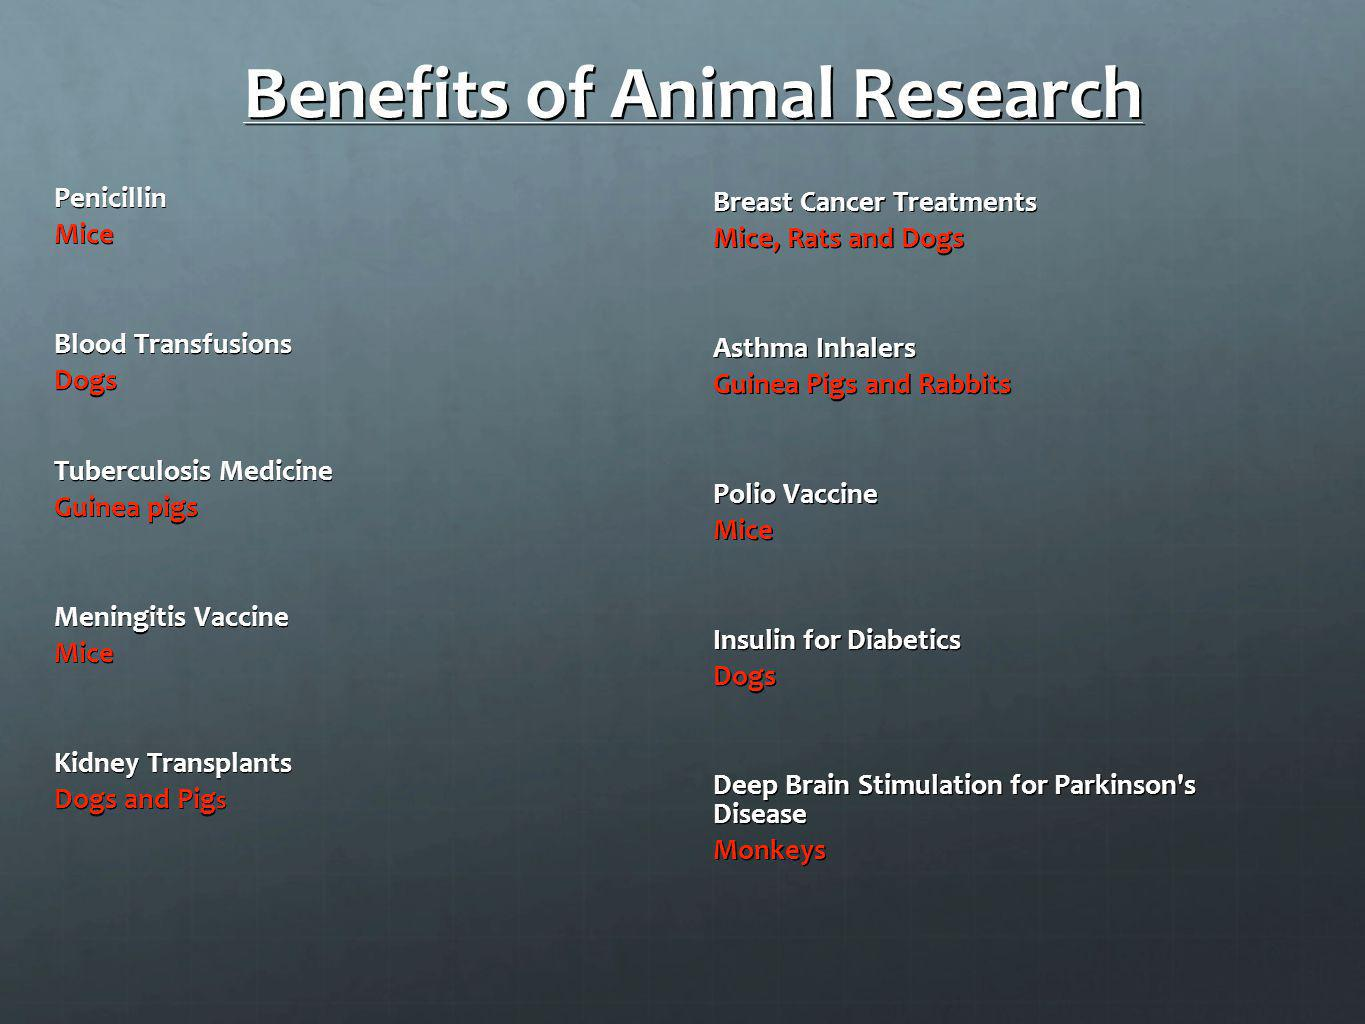 Benefits of Animal Research PenicillinMice Blood Transfusions Dogs Tuberculosis Medicine Guinea pigs Meningitis Vaccine Mice Kidney Transplants Dogs a